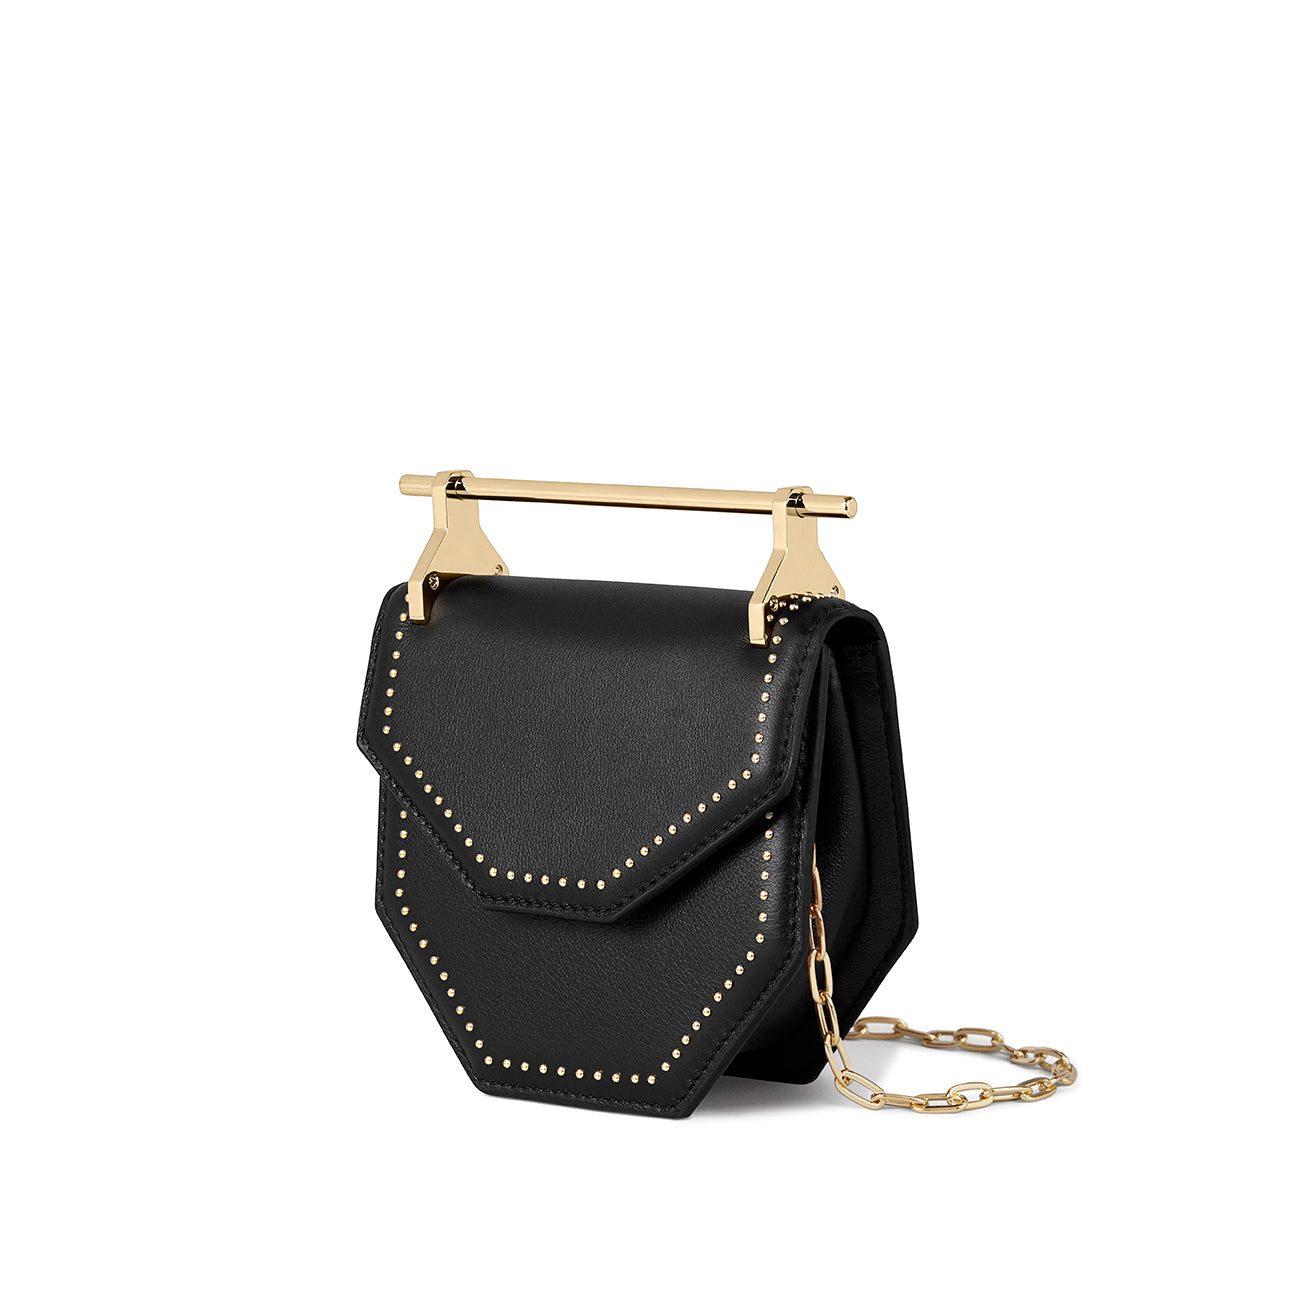 Mini Amor/Fati Black With Gold Studs